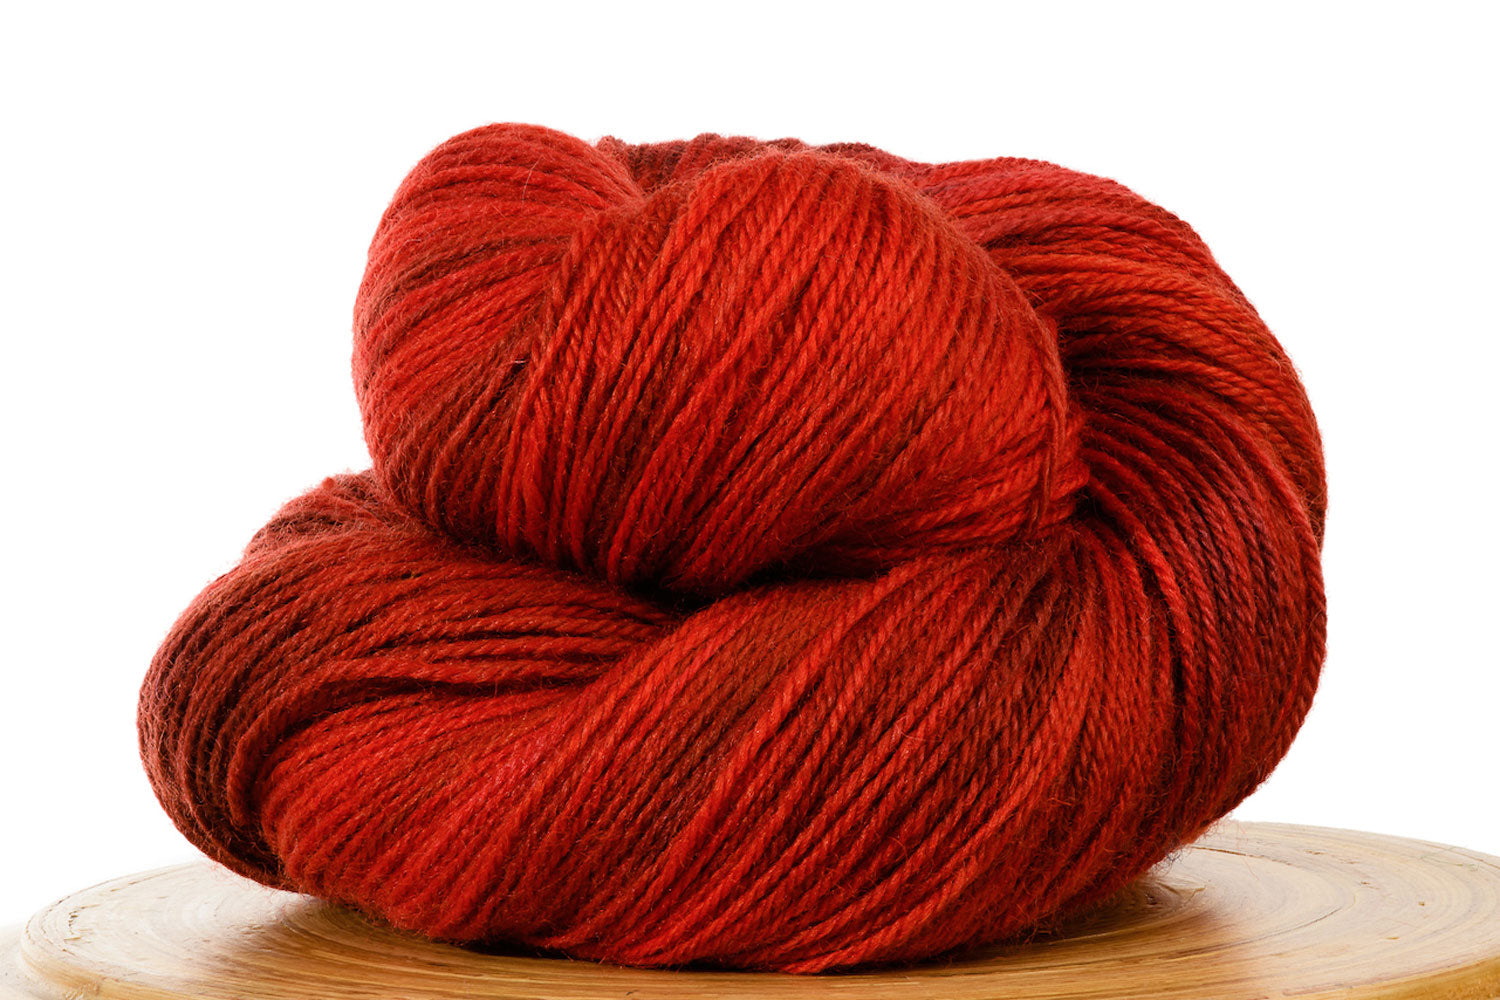 Pizzicato hand-dyed BFL sock yarn in Heartbeat